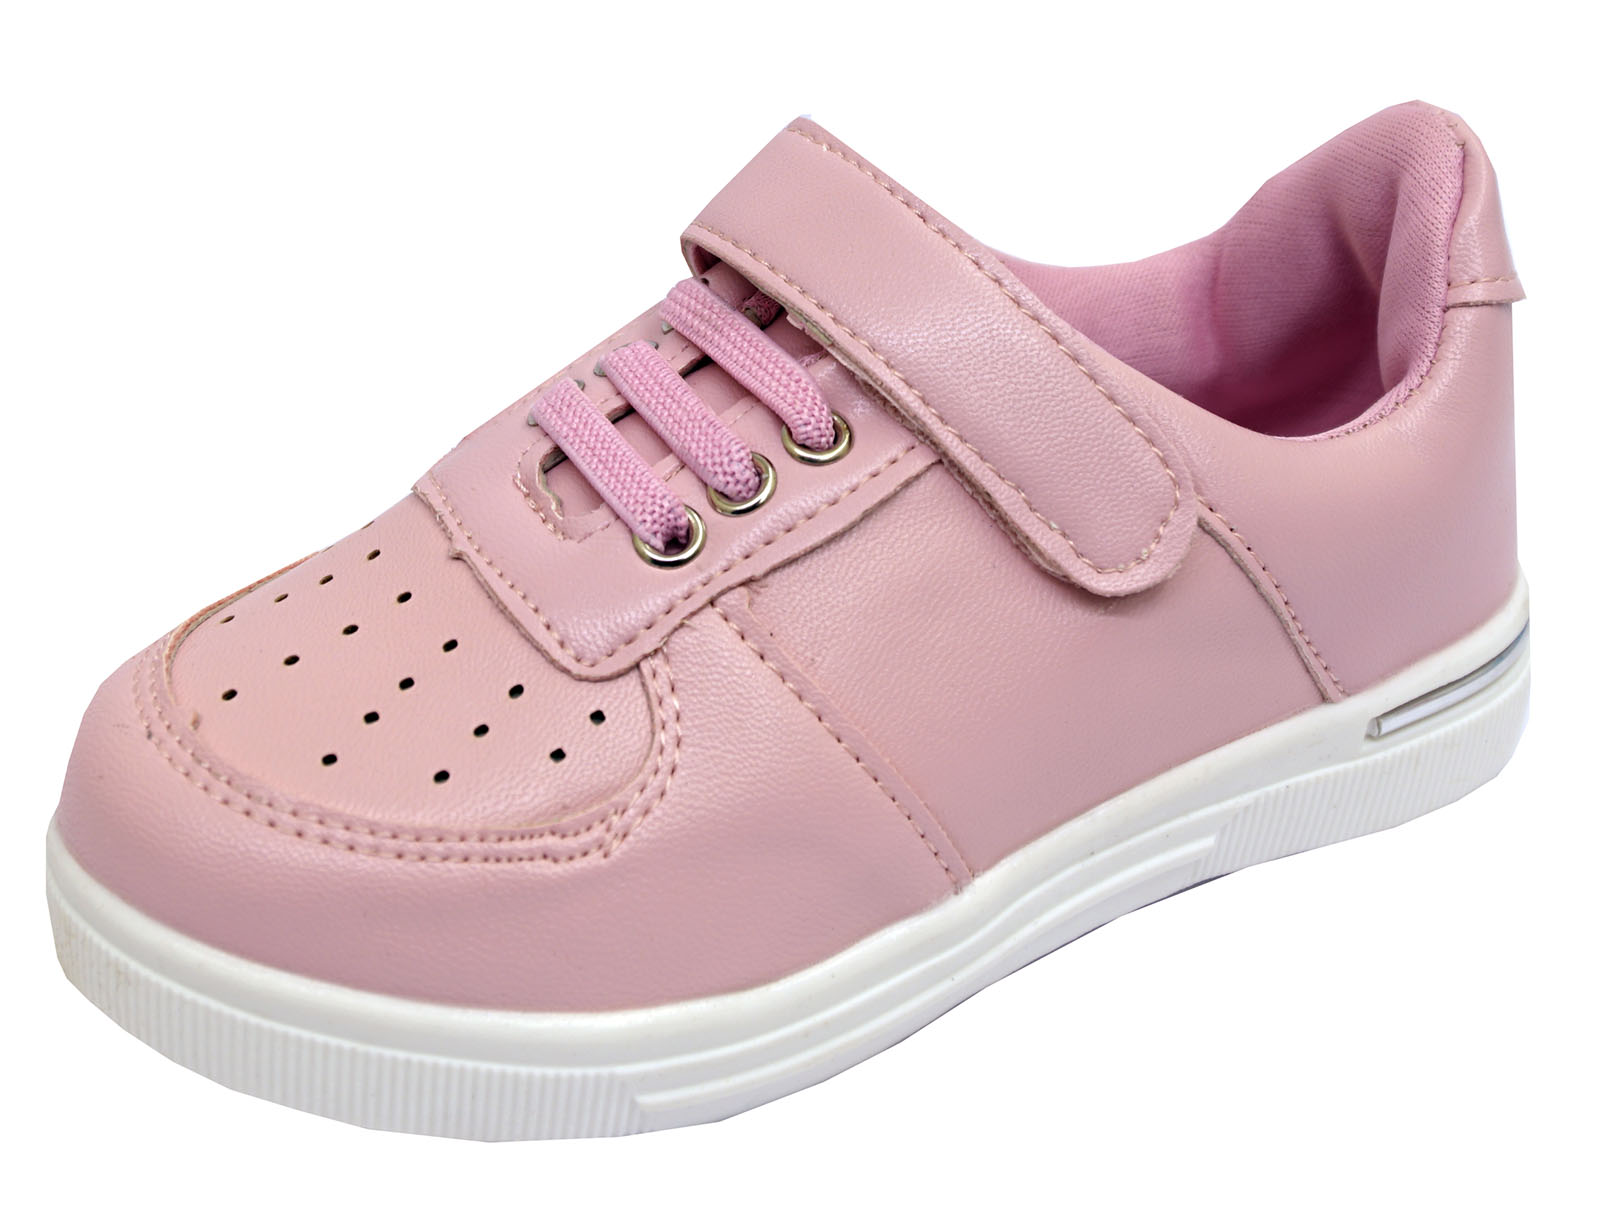 GIRLS KIDS CHILDRENS PINK CASUAL SPORTS TRAINERS SHOES PLIMSOLL PUMPS SIZES 8-2